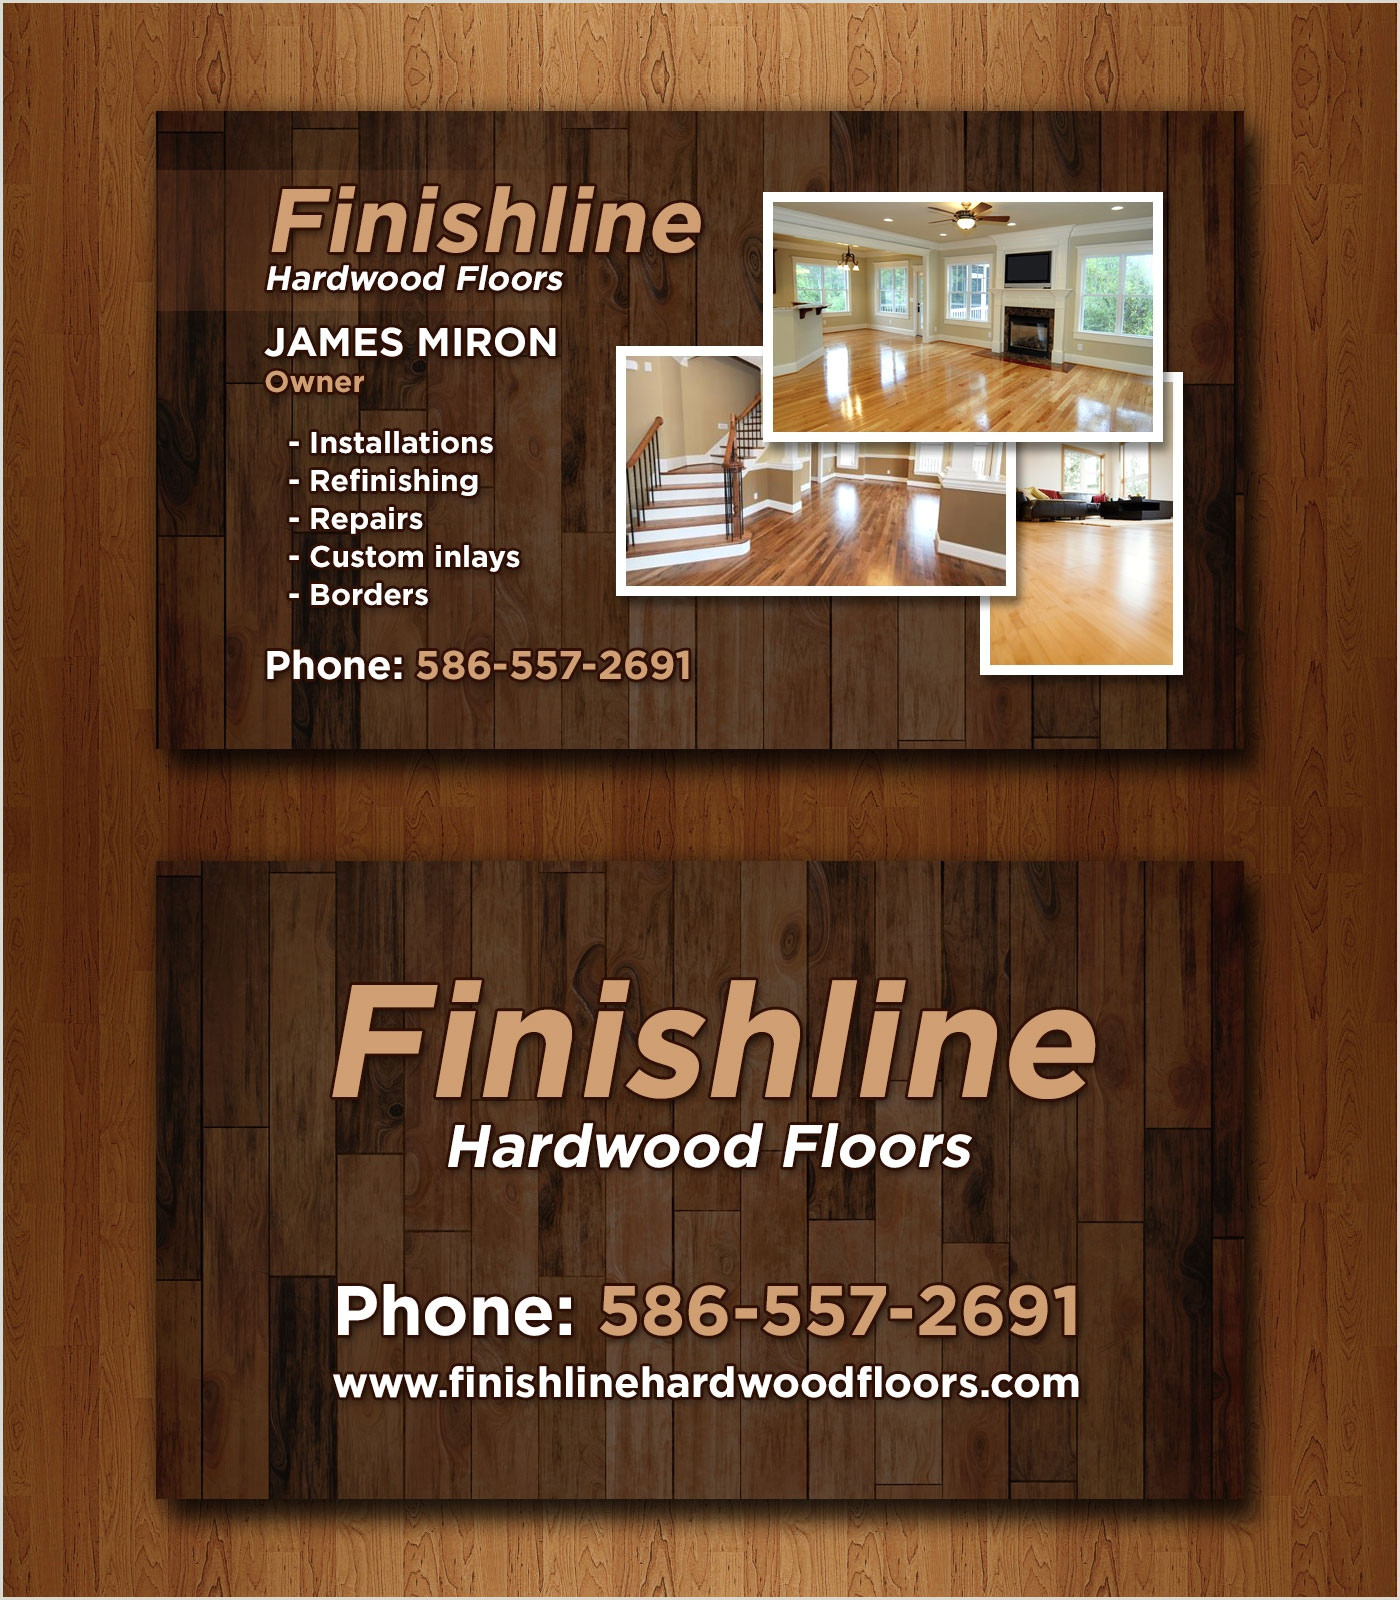 Business Cards Samples 14 Popular Hardwood Flooring Business Card Template